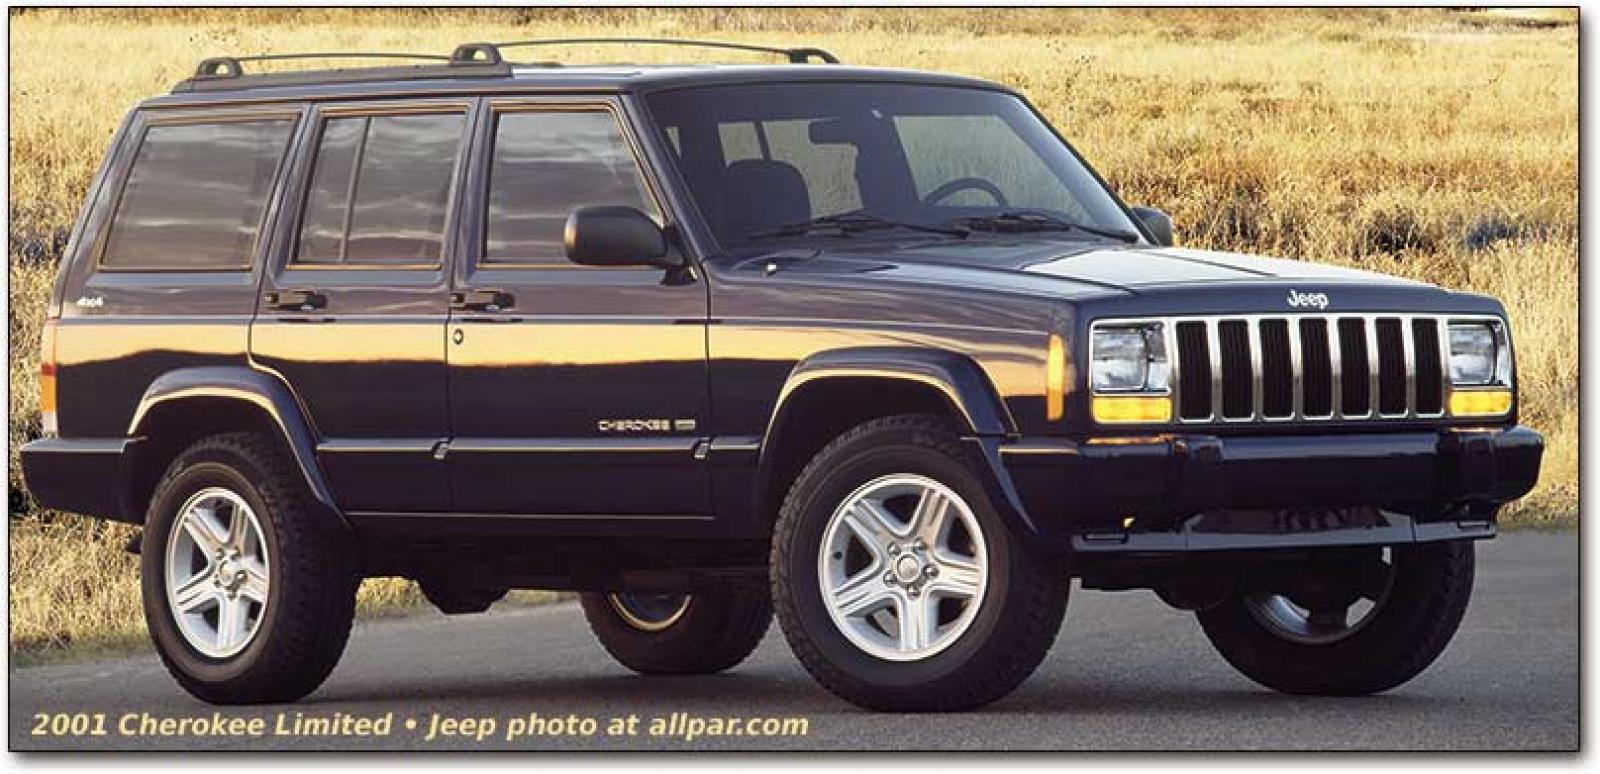 1997 Jeep Cherokee Information And Photos Zombiedrive Wrangler Engine Diagram 800 1024 1280 1600 Origin